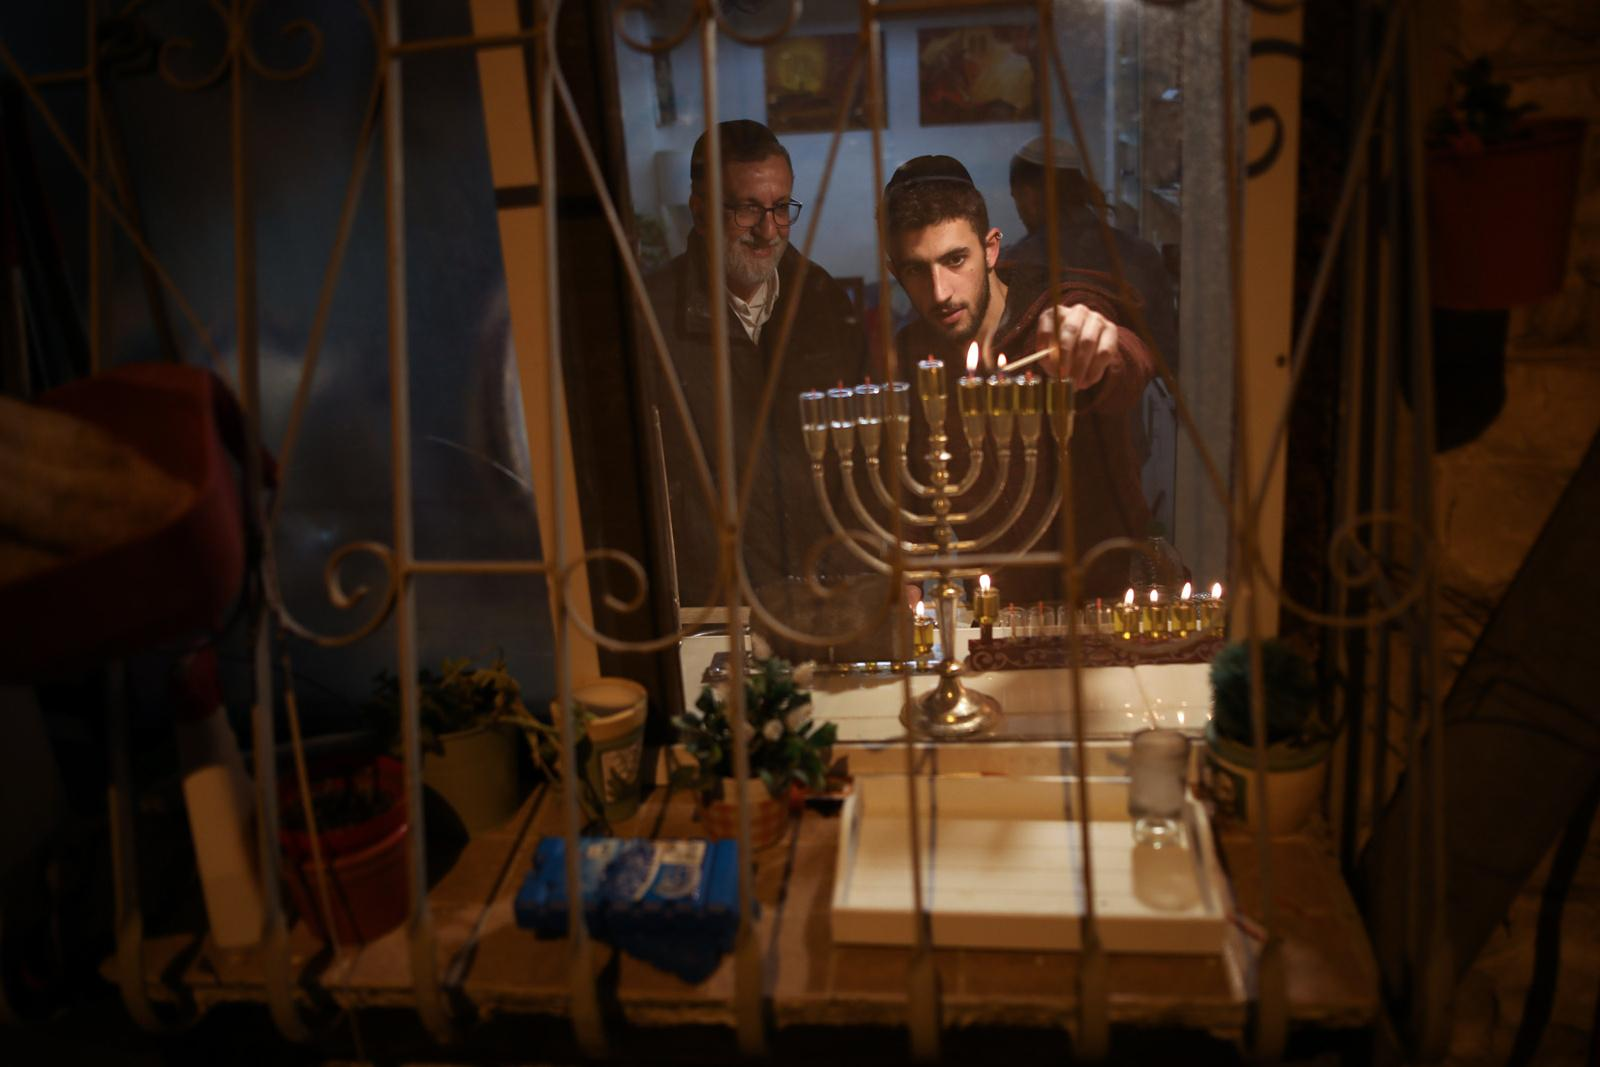 An young Jewish man lights candles at his home on the fourth night of the holiday of Hanukkah in Jerusalem's Nachlaot neighourhood, Israel, December 05, 2018